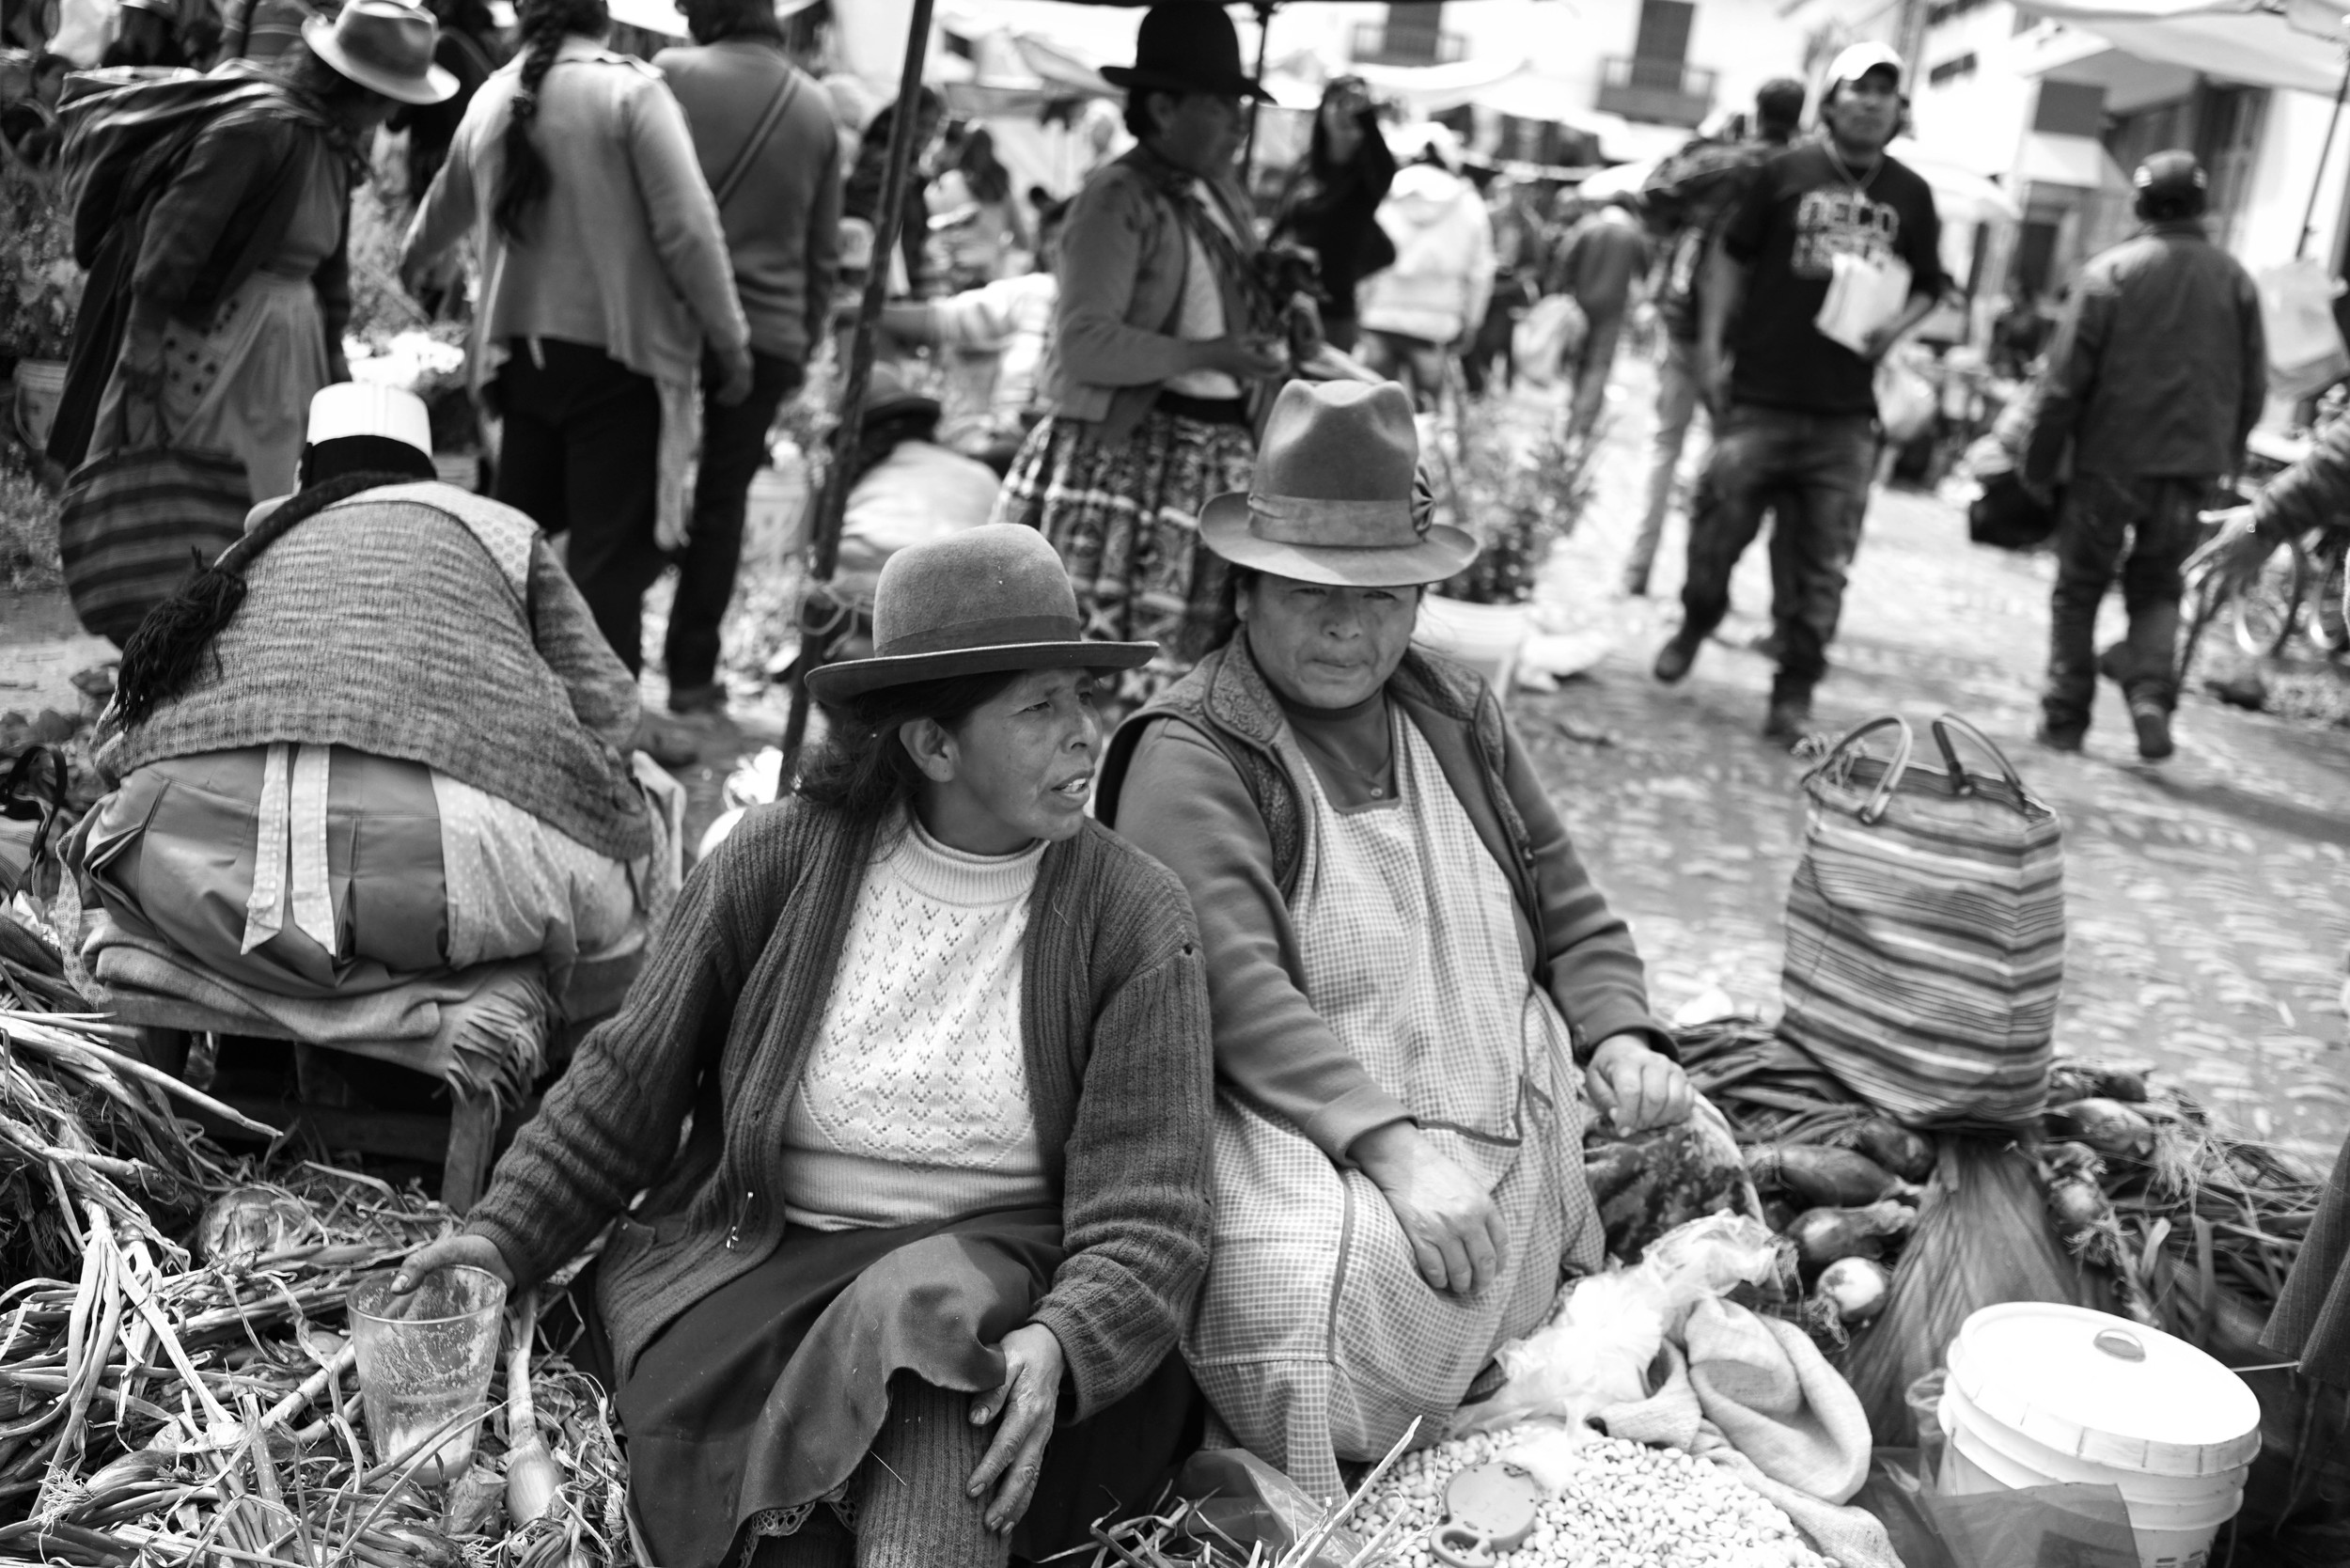 Market gossip. Pisac, Cusco, Peru. May 2015